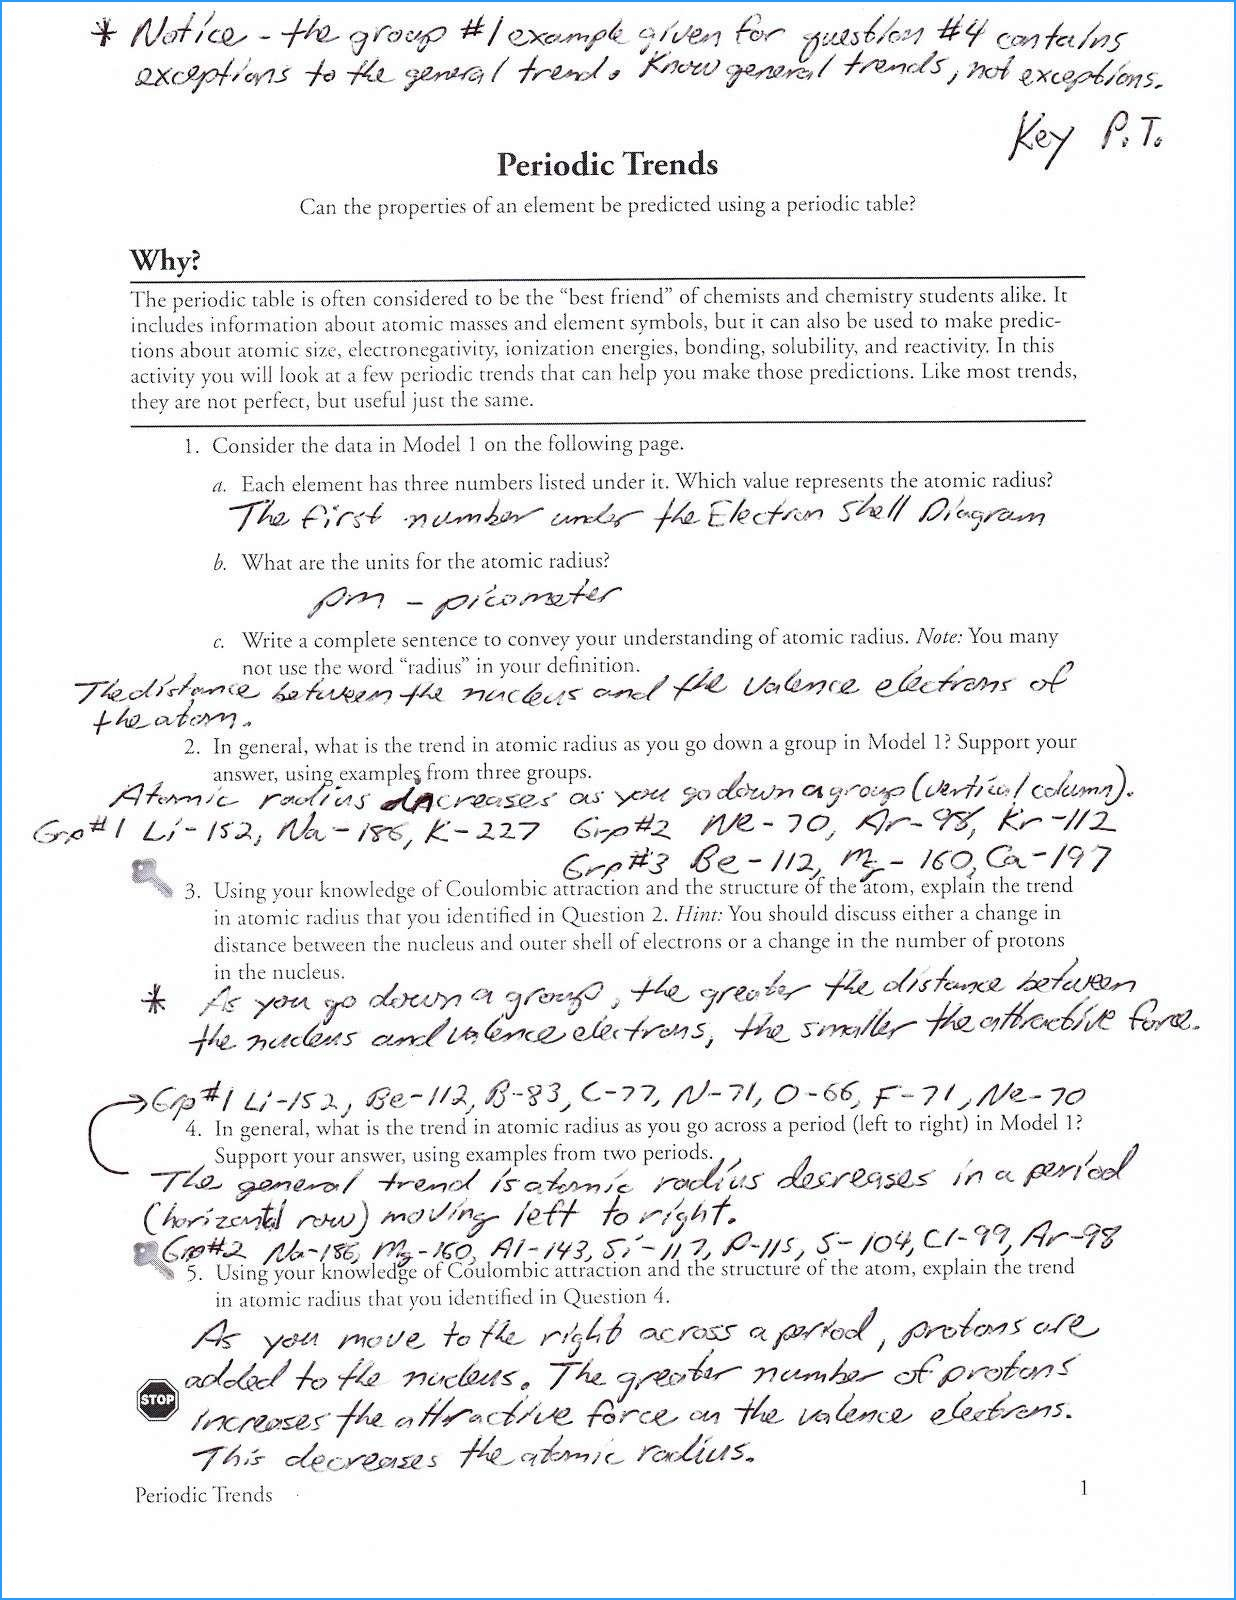 Periodic Trends Worksheet Answer Key   db excel.com